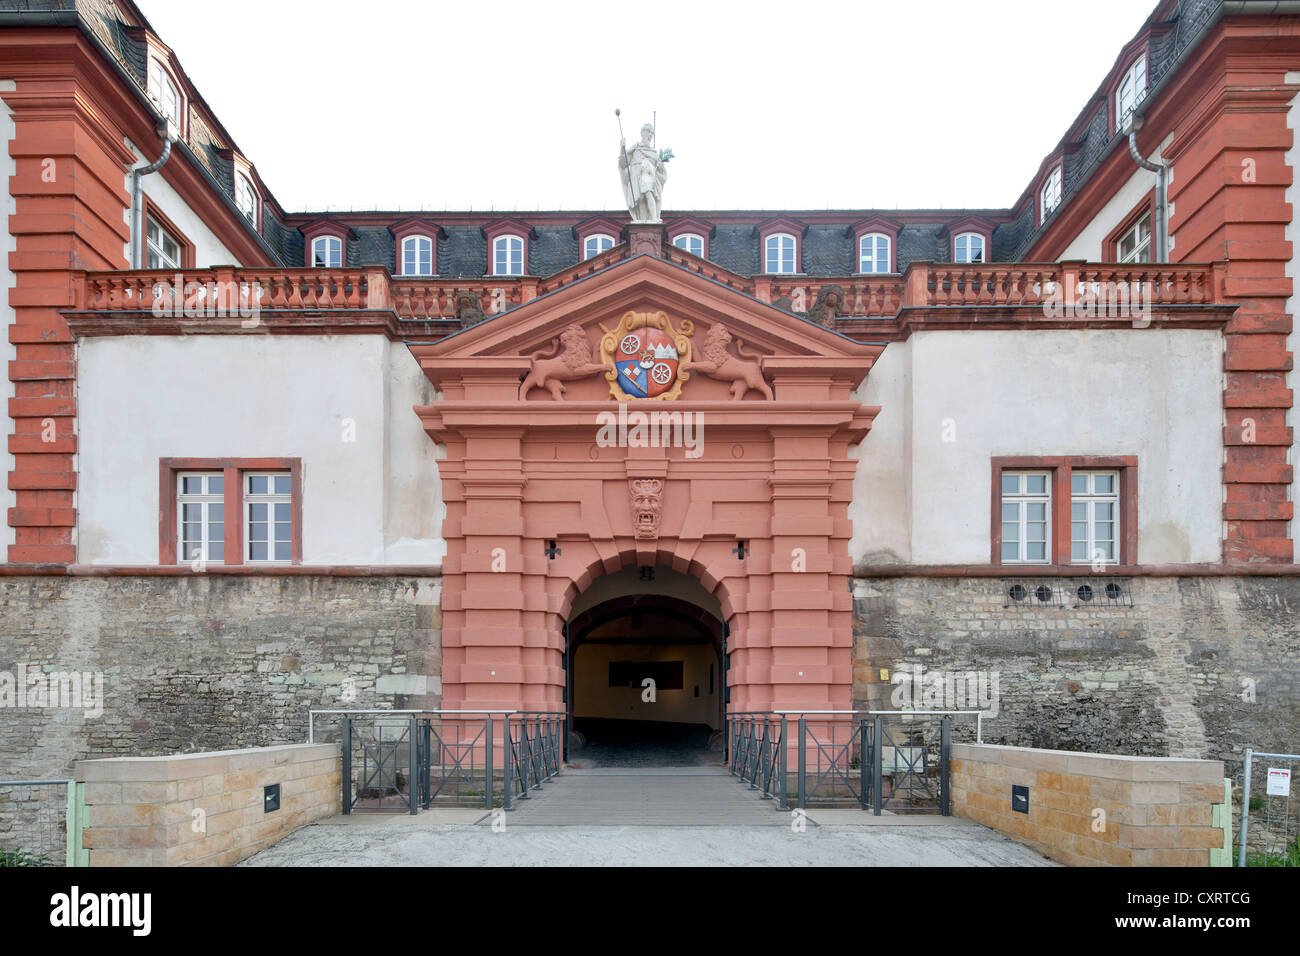 Former Citadel of Mainz, Department of Urban Planning, Mainz, Rhineland-Palatinate, Germany, Europe, PublicGround - Stock Image